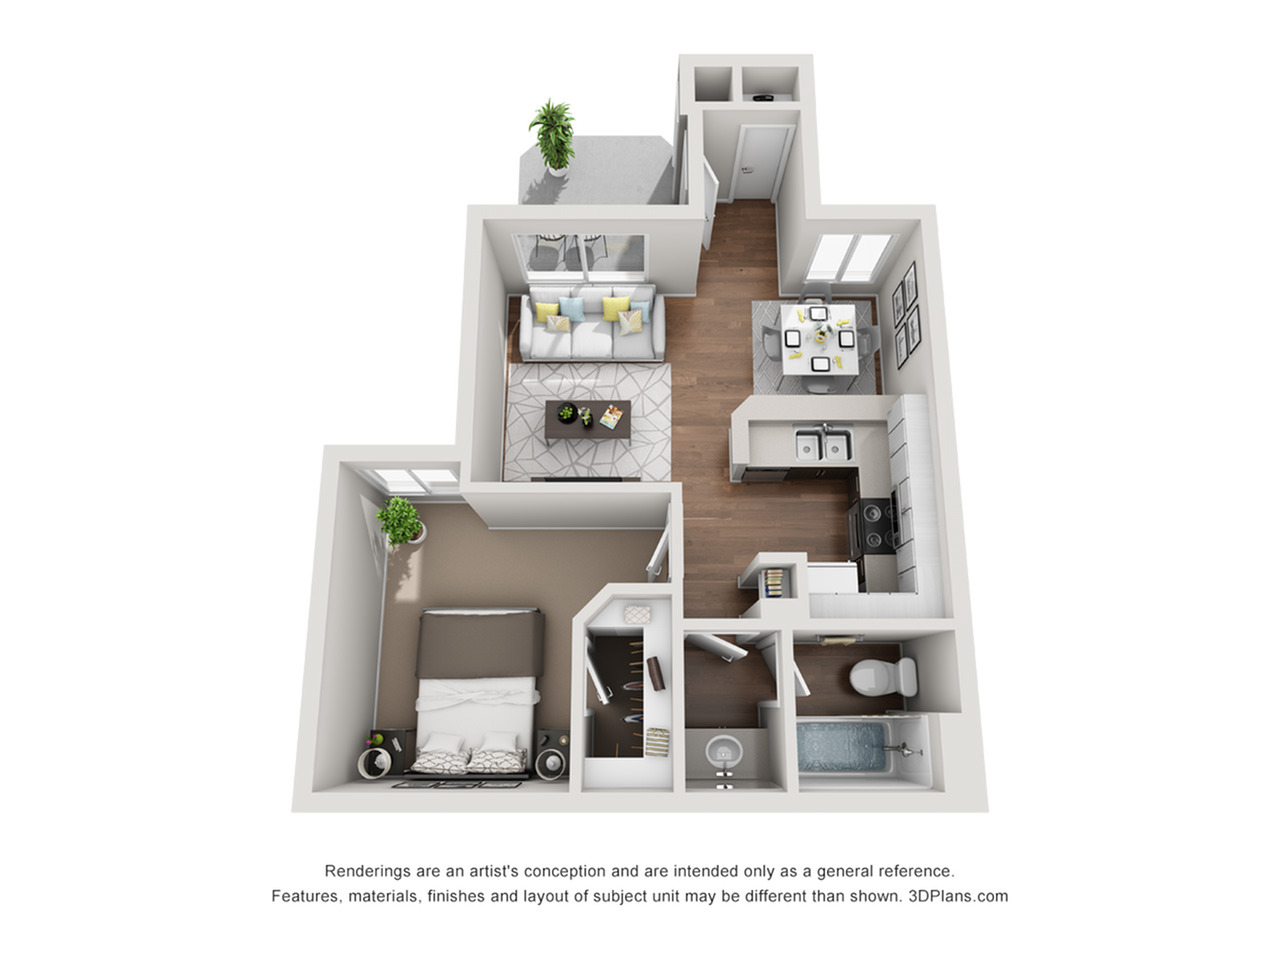 Renew at The Shops | One Bedroom Floorplan 1